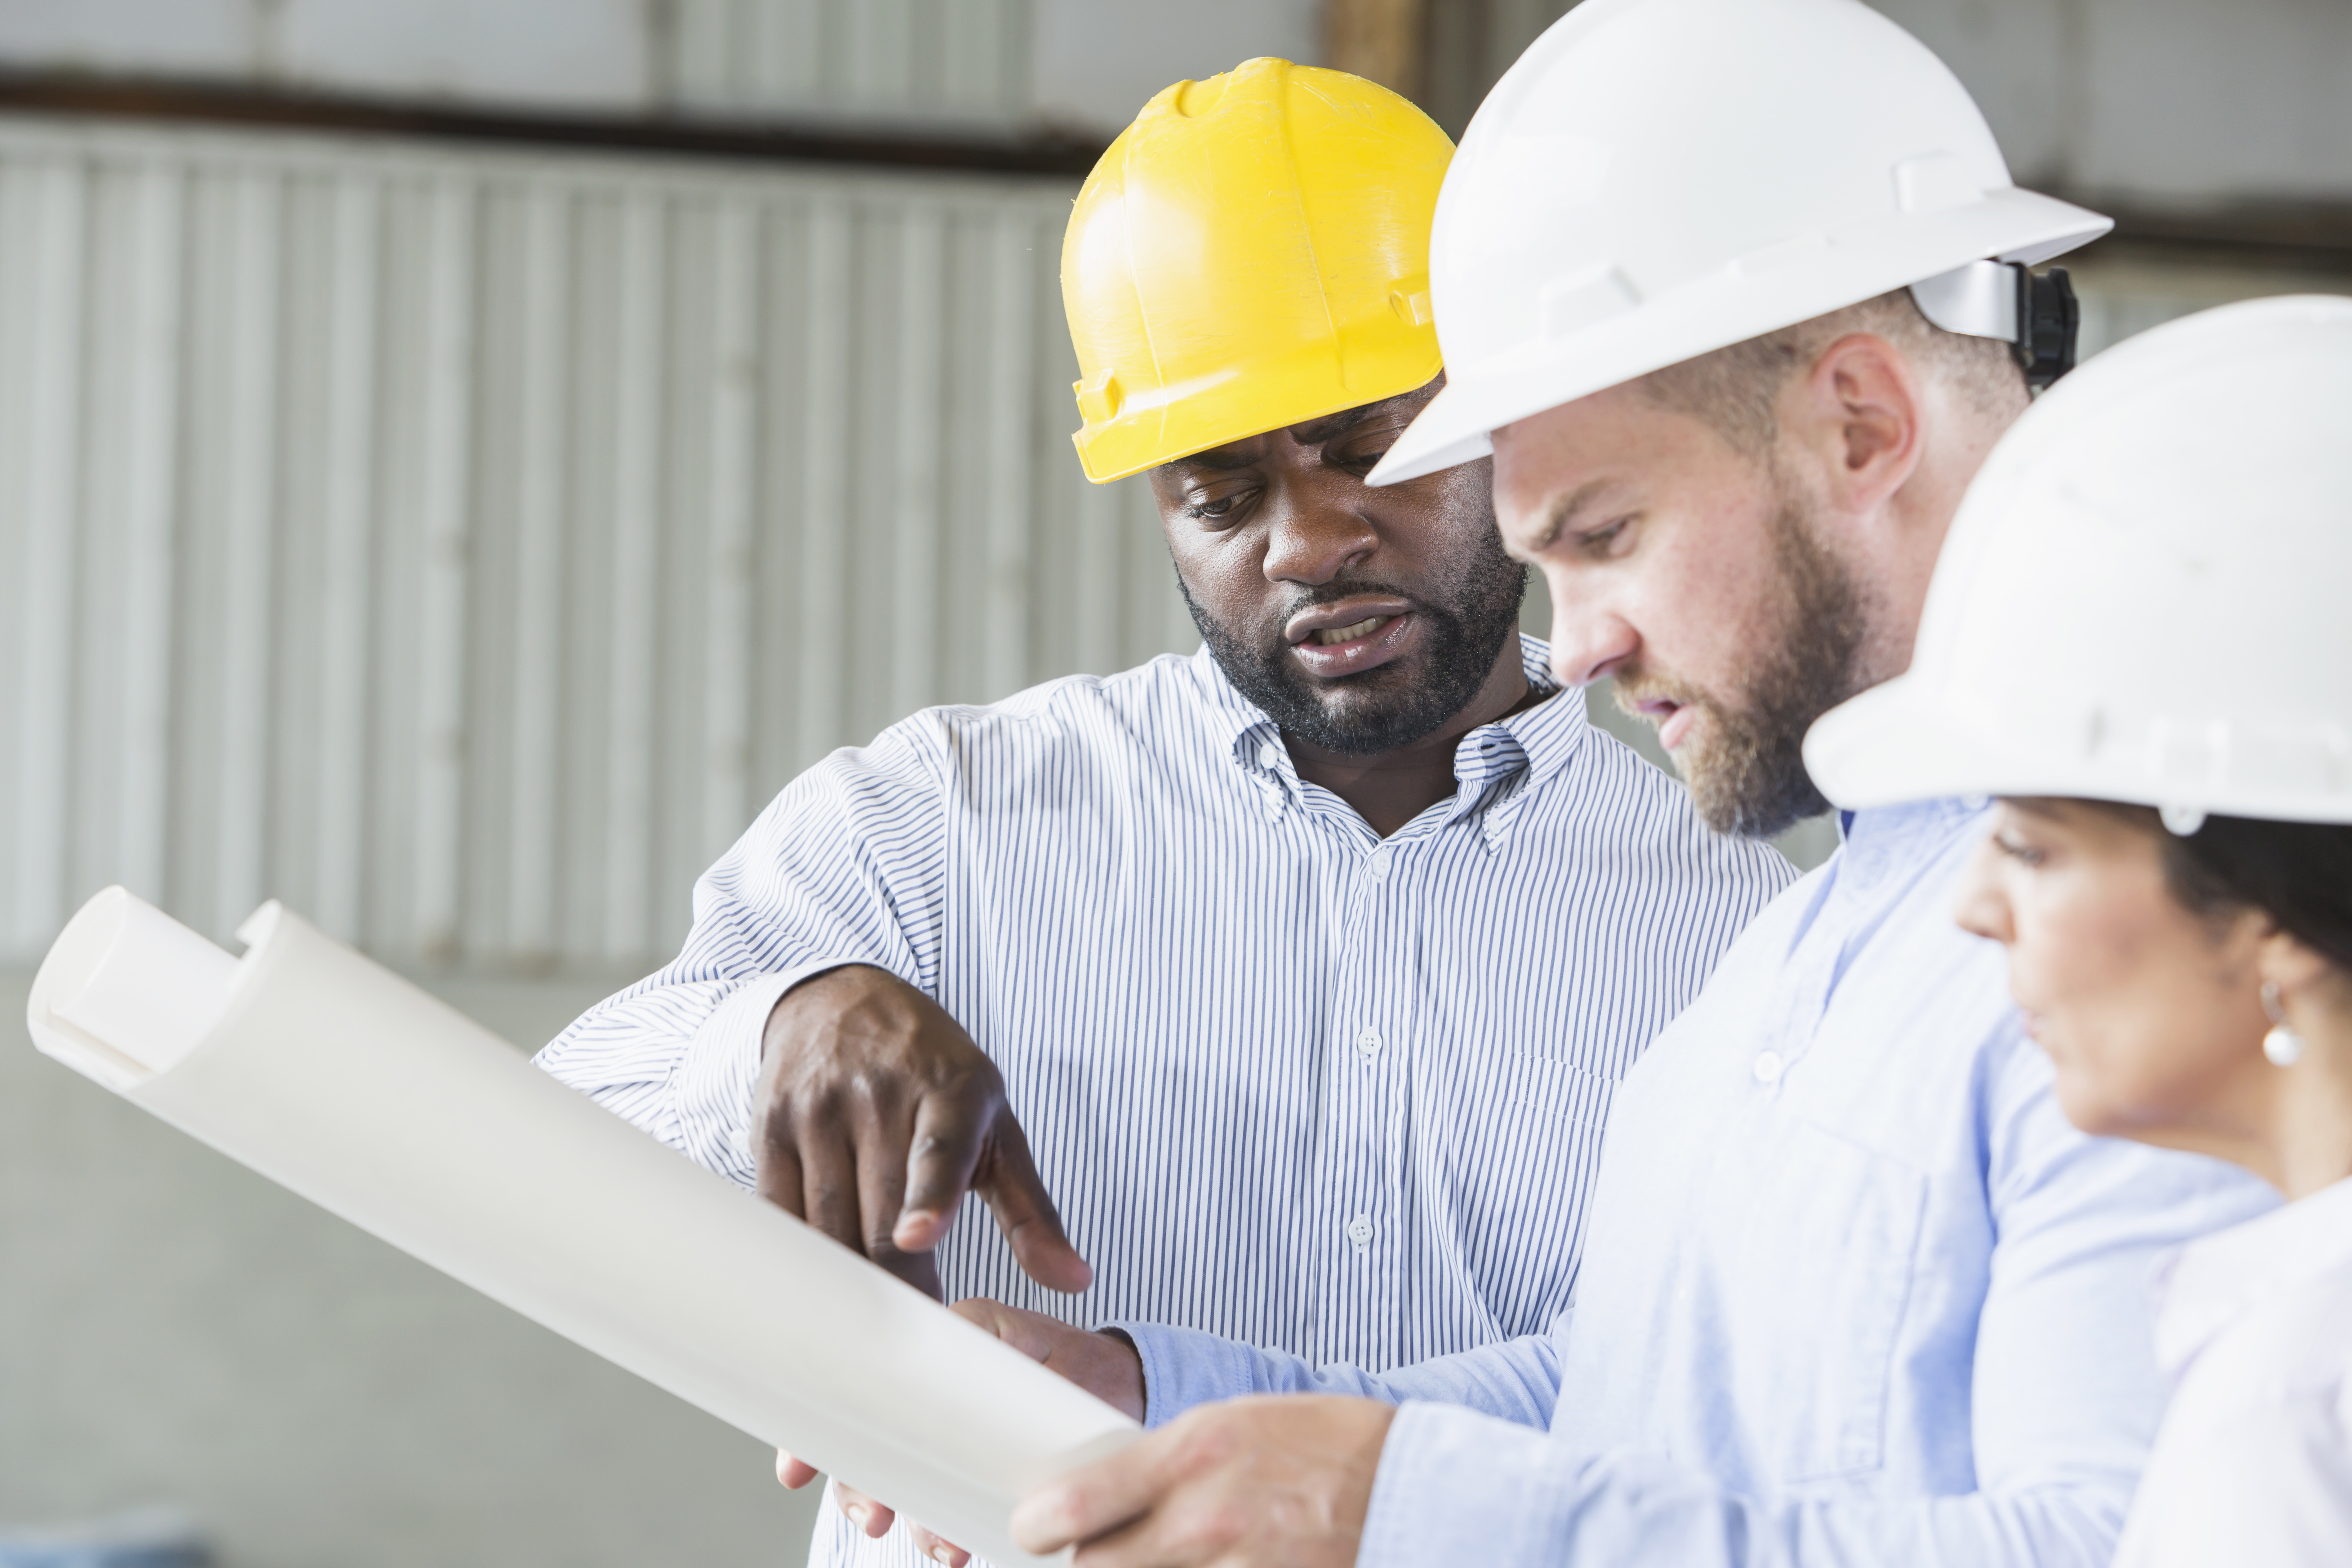 Three multi-ethnic workers wearing hardhats, looking at plans. The focus is on the African American man wearing a yellow hardhat.